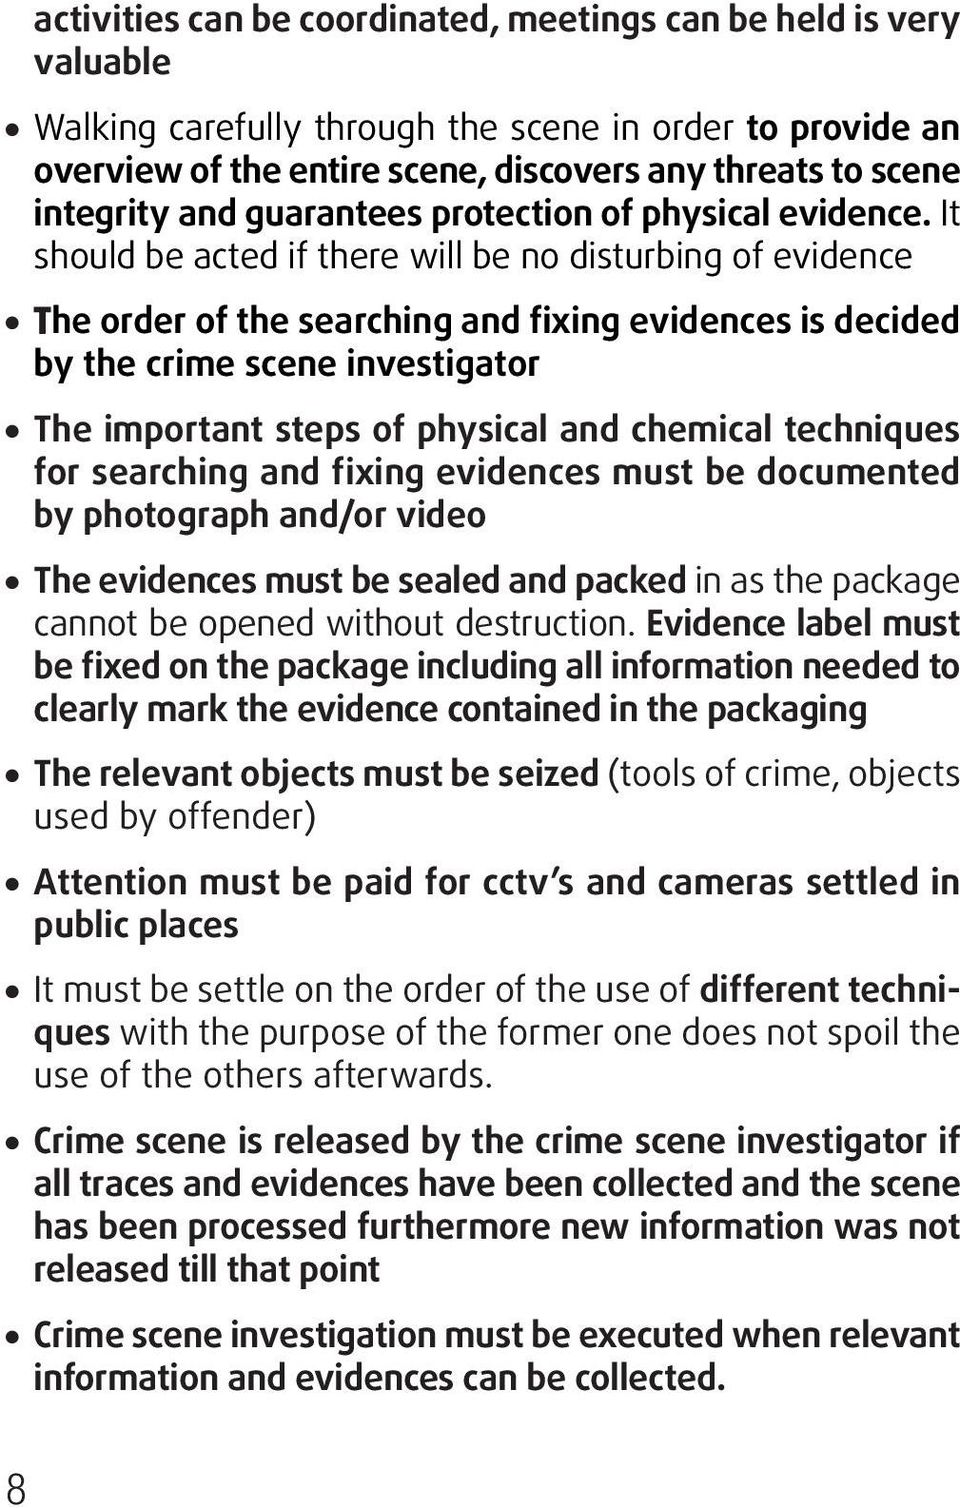 It should be acted if there will be no disturbing of evidence The order of the searching and fixing evidences is decided by the crime scene investigator The important steps of physical and chemical